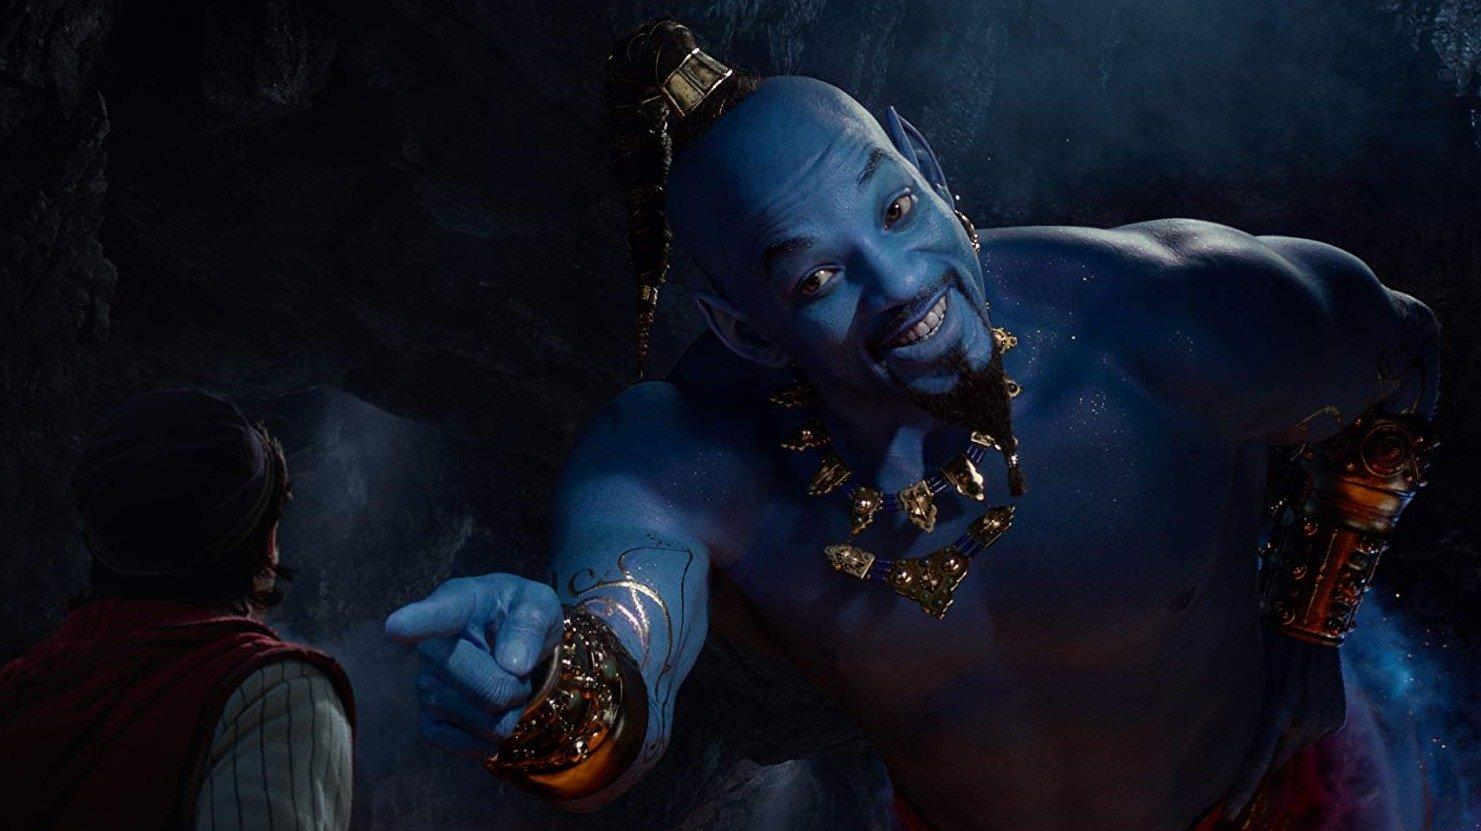 En marcha la secuela Aladdin con Will Smith